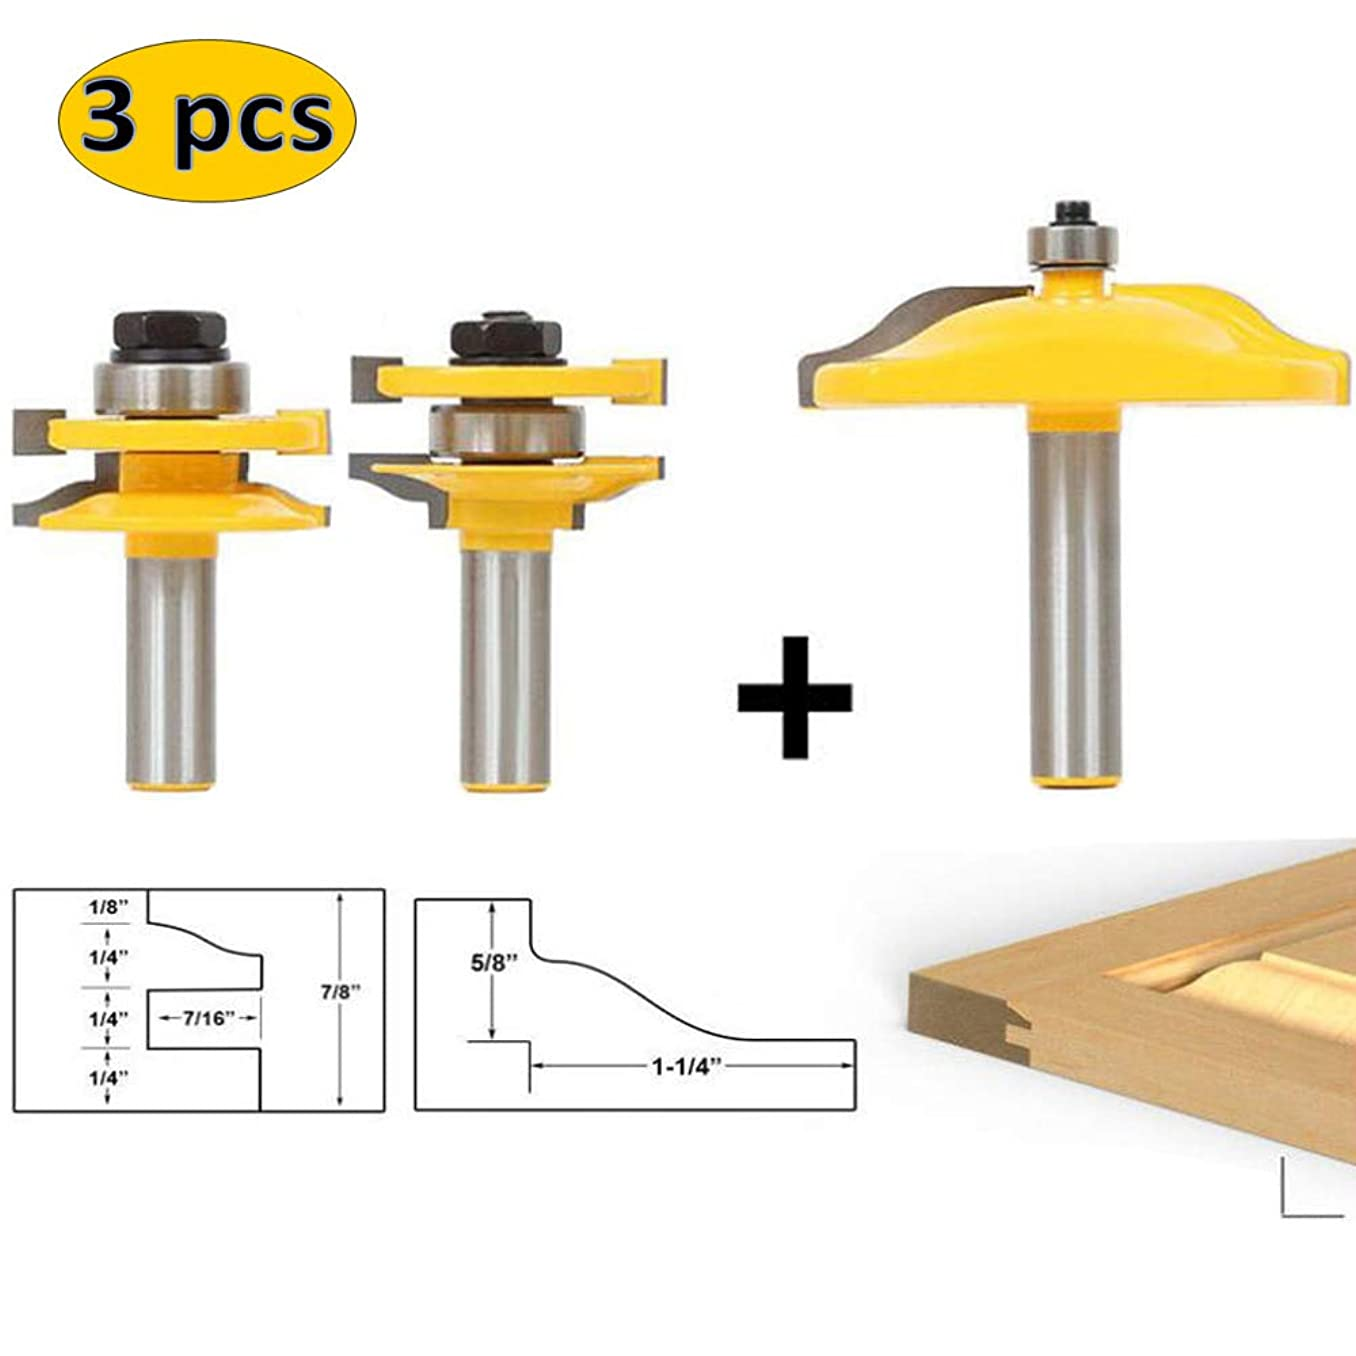 LETBE 3 PCS Router Bit Set, 1/2-Inch Shank Round Over Raised Panel Cabinet Door Ogee Rail and Stile Router Bits, Woodworking Wood Cutter, Wood Carbide Groove Tongue Milling Tool (1/2,HXRD-1224A)